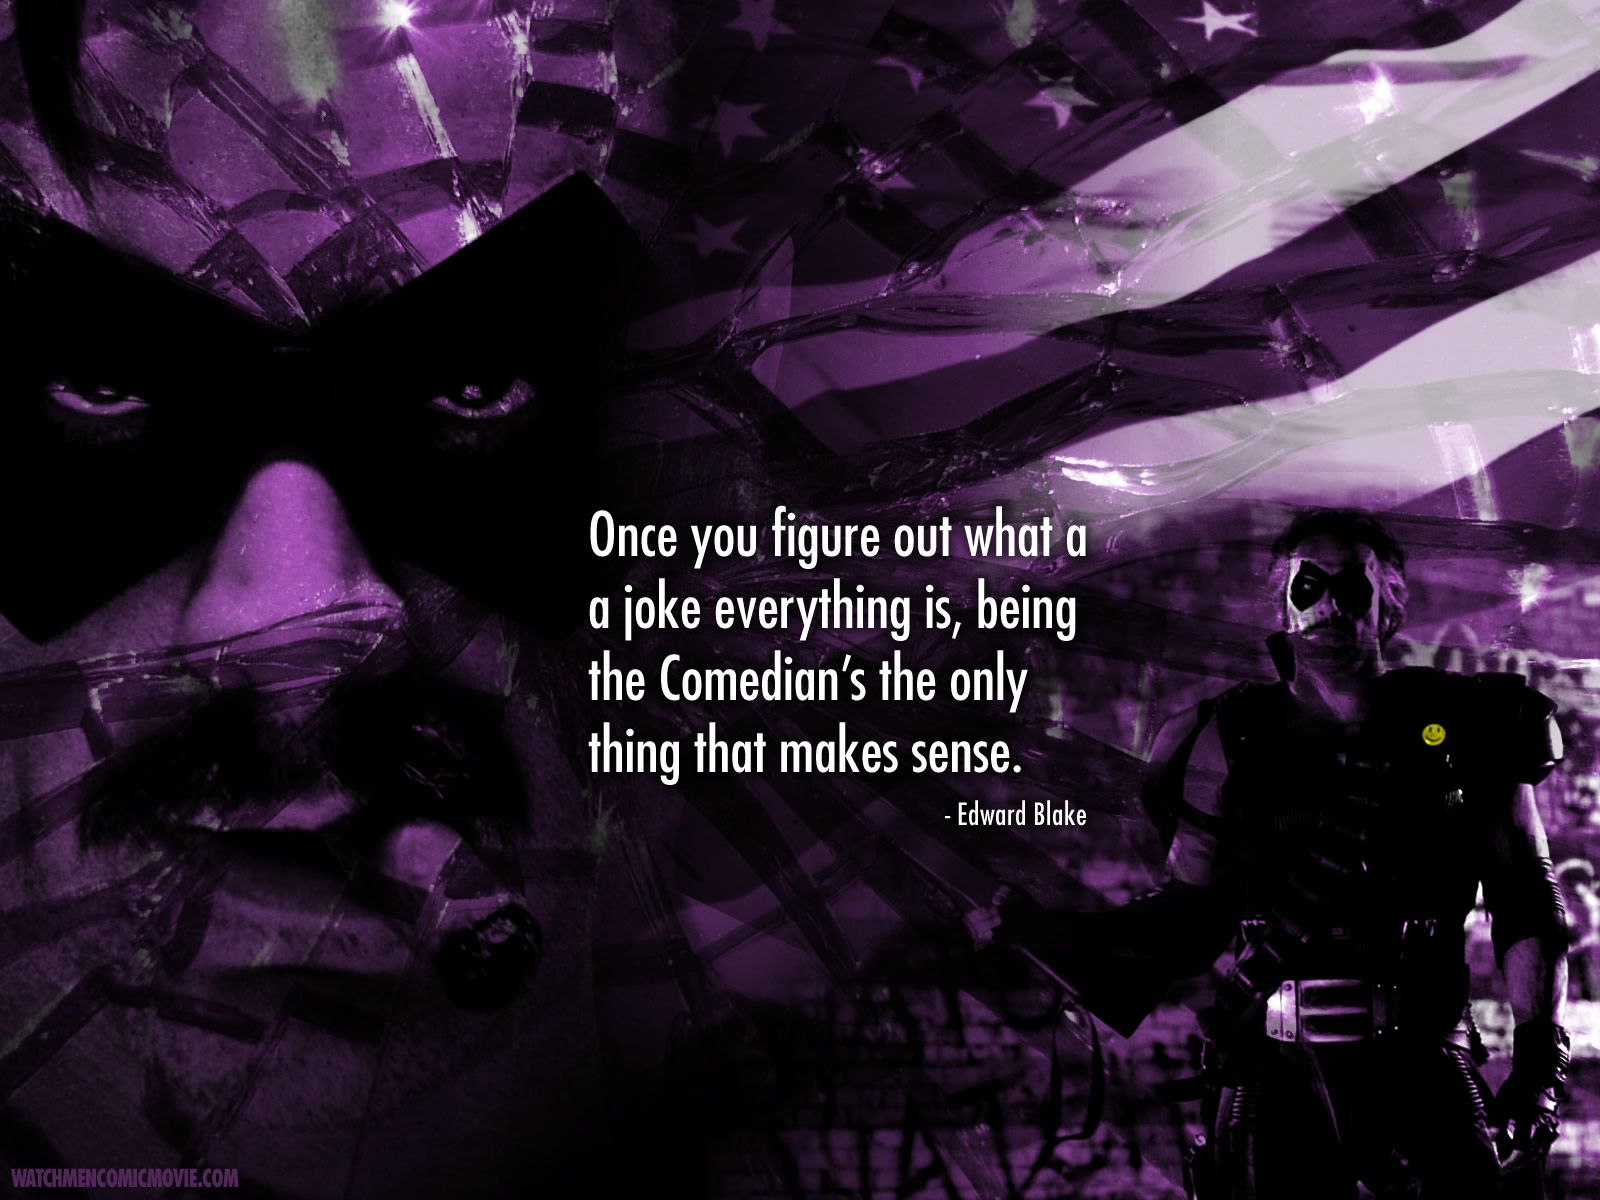 Once You Figure Out What A Joke Everything Is Edward Blake Watchmen 1600x1200 Watchmen Quotes Comedians Comedian Quotes